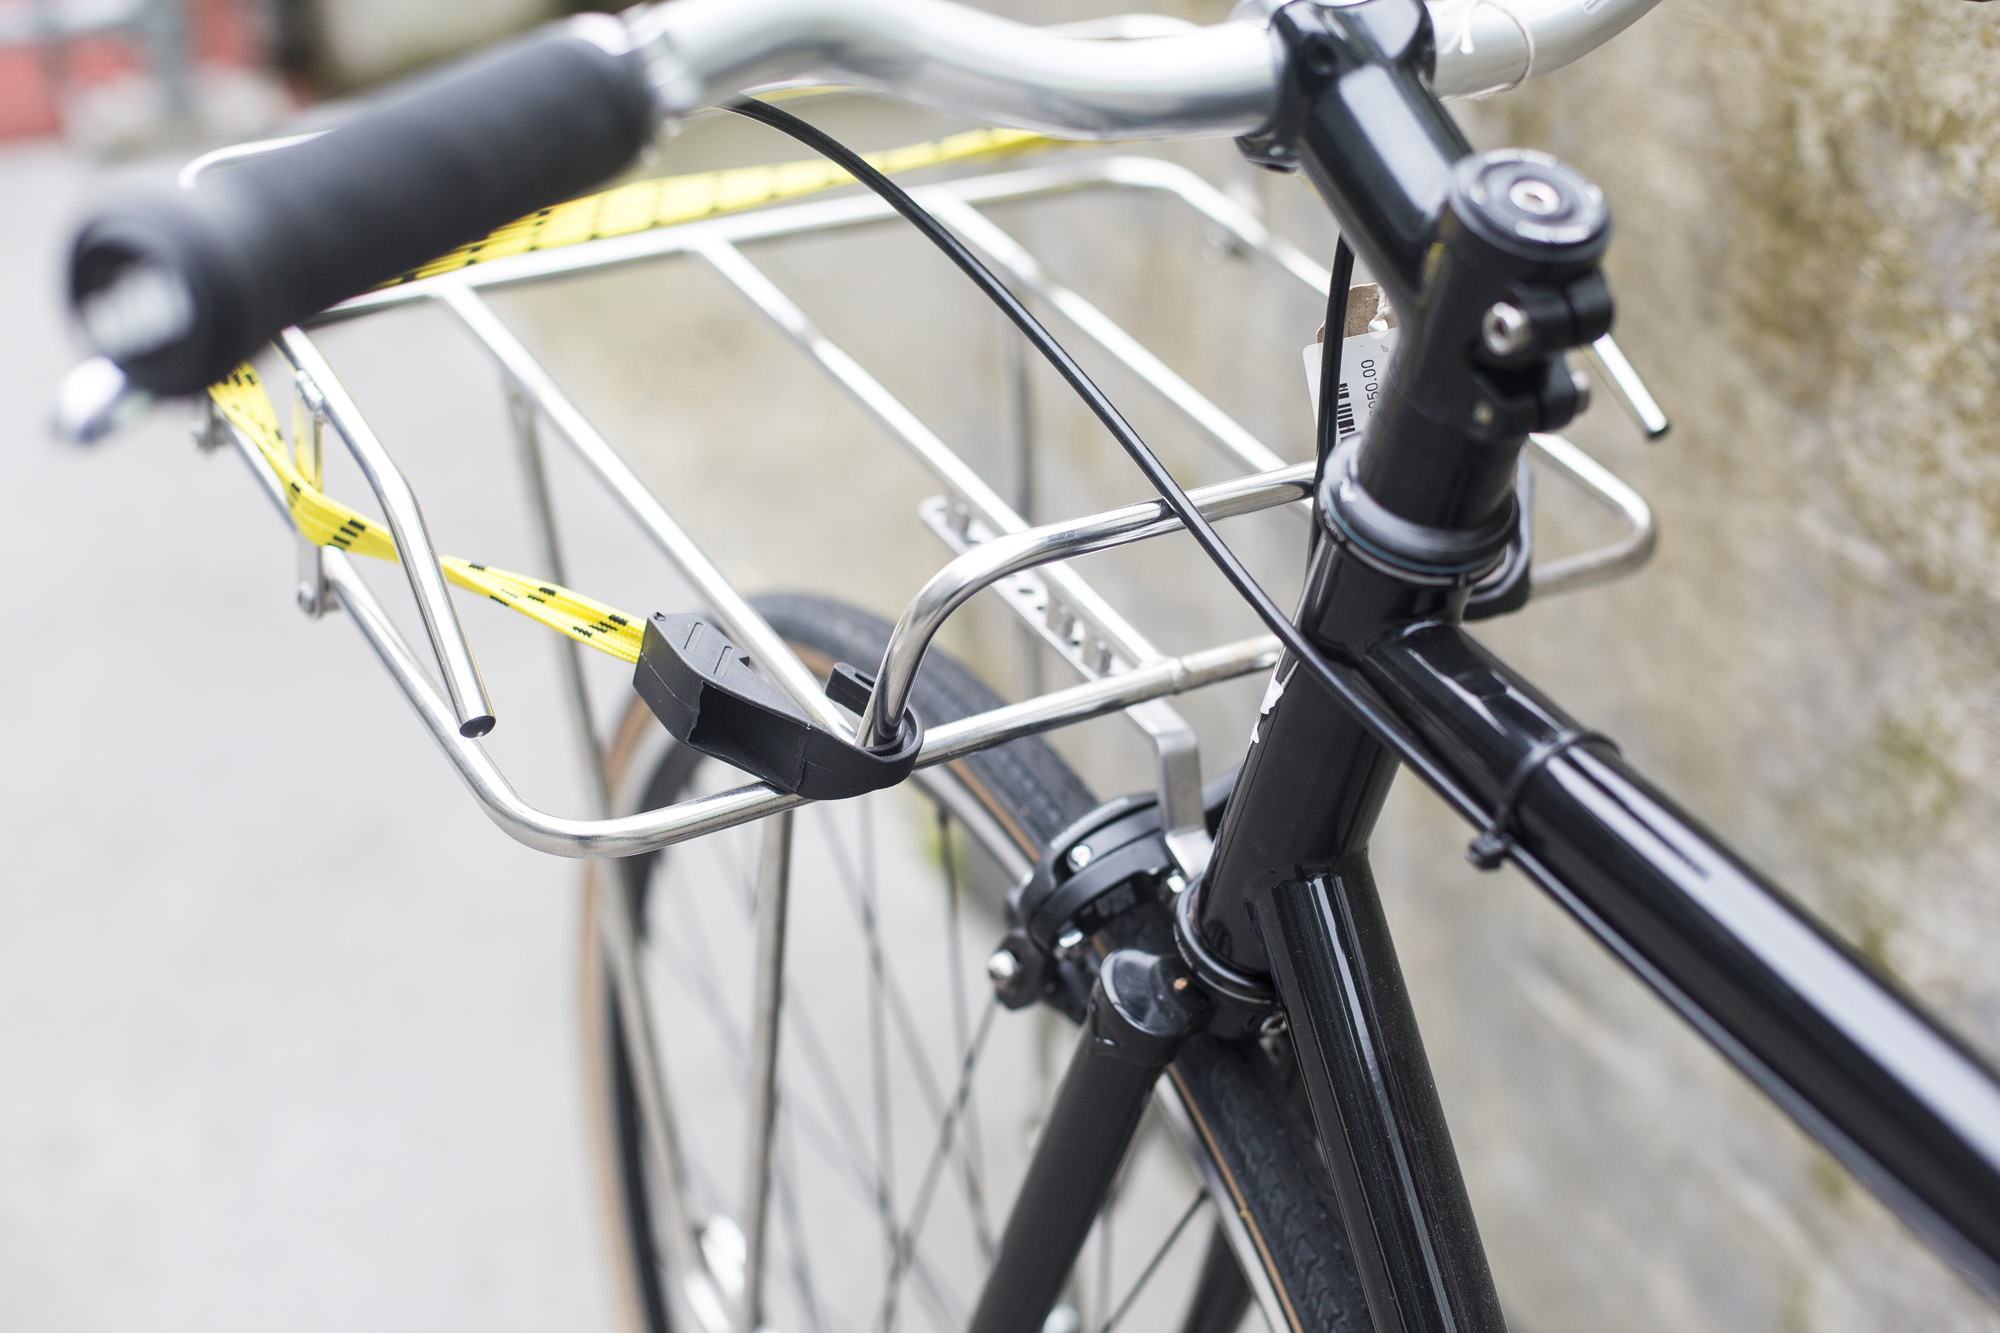 seabass-cycles-bikes-instore-5-february-2019-brother-cycles-all-day-00137.jpg